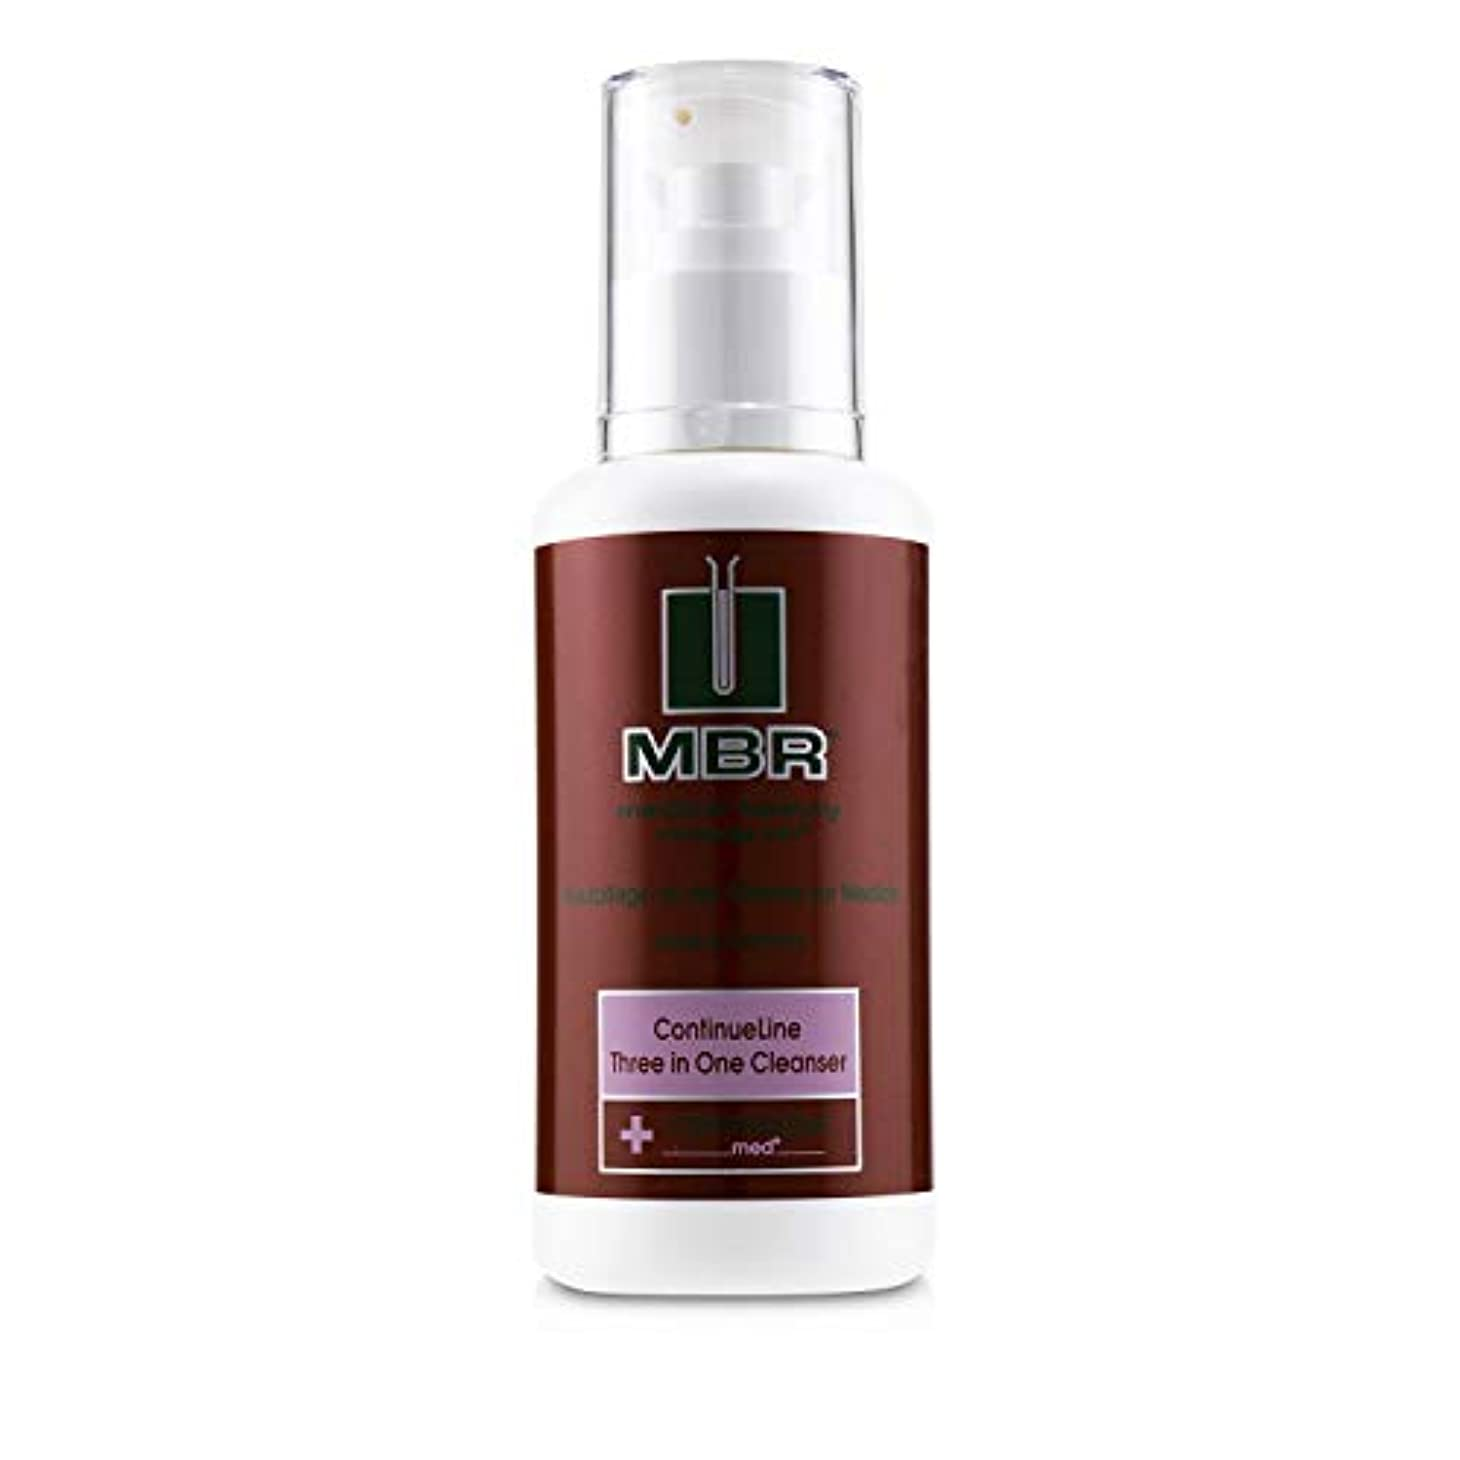 困惑する放棄された内なるMBR Medical Beauty Research ContinueLine Med ContinueLine Three in One Cleanser 150ml/5.1oz並行輸入品